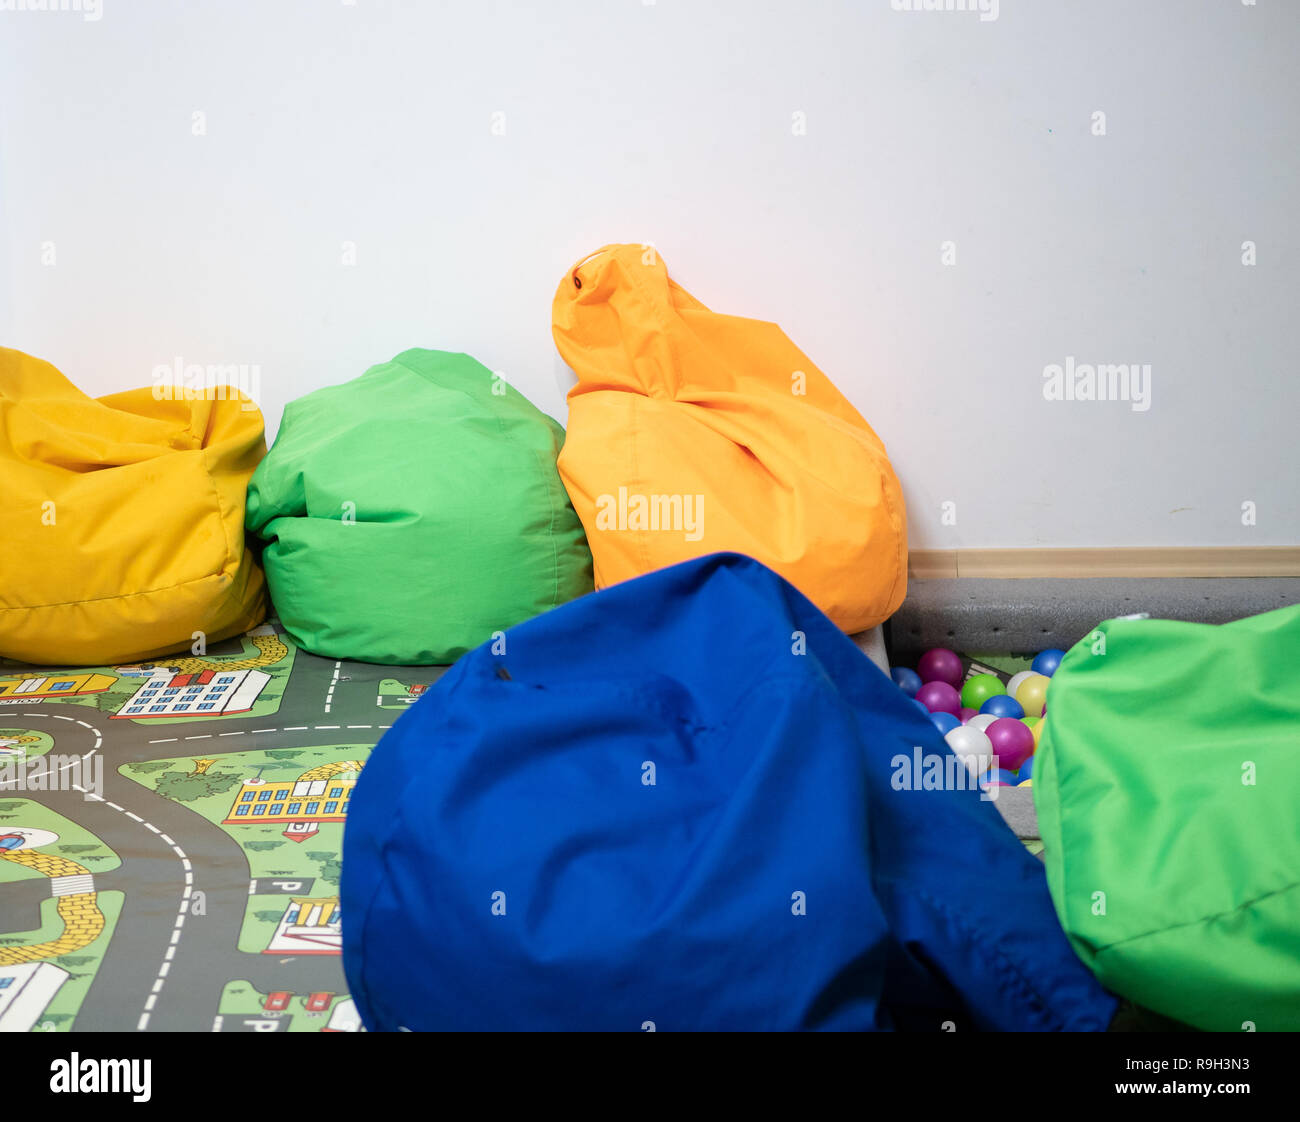 lot of vivid vibrant bean bags at kids playground zone at kindergarten, indoor image with lot of copy space on white background wall - Stock Image